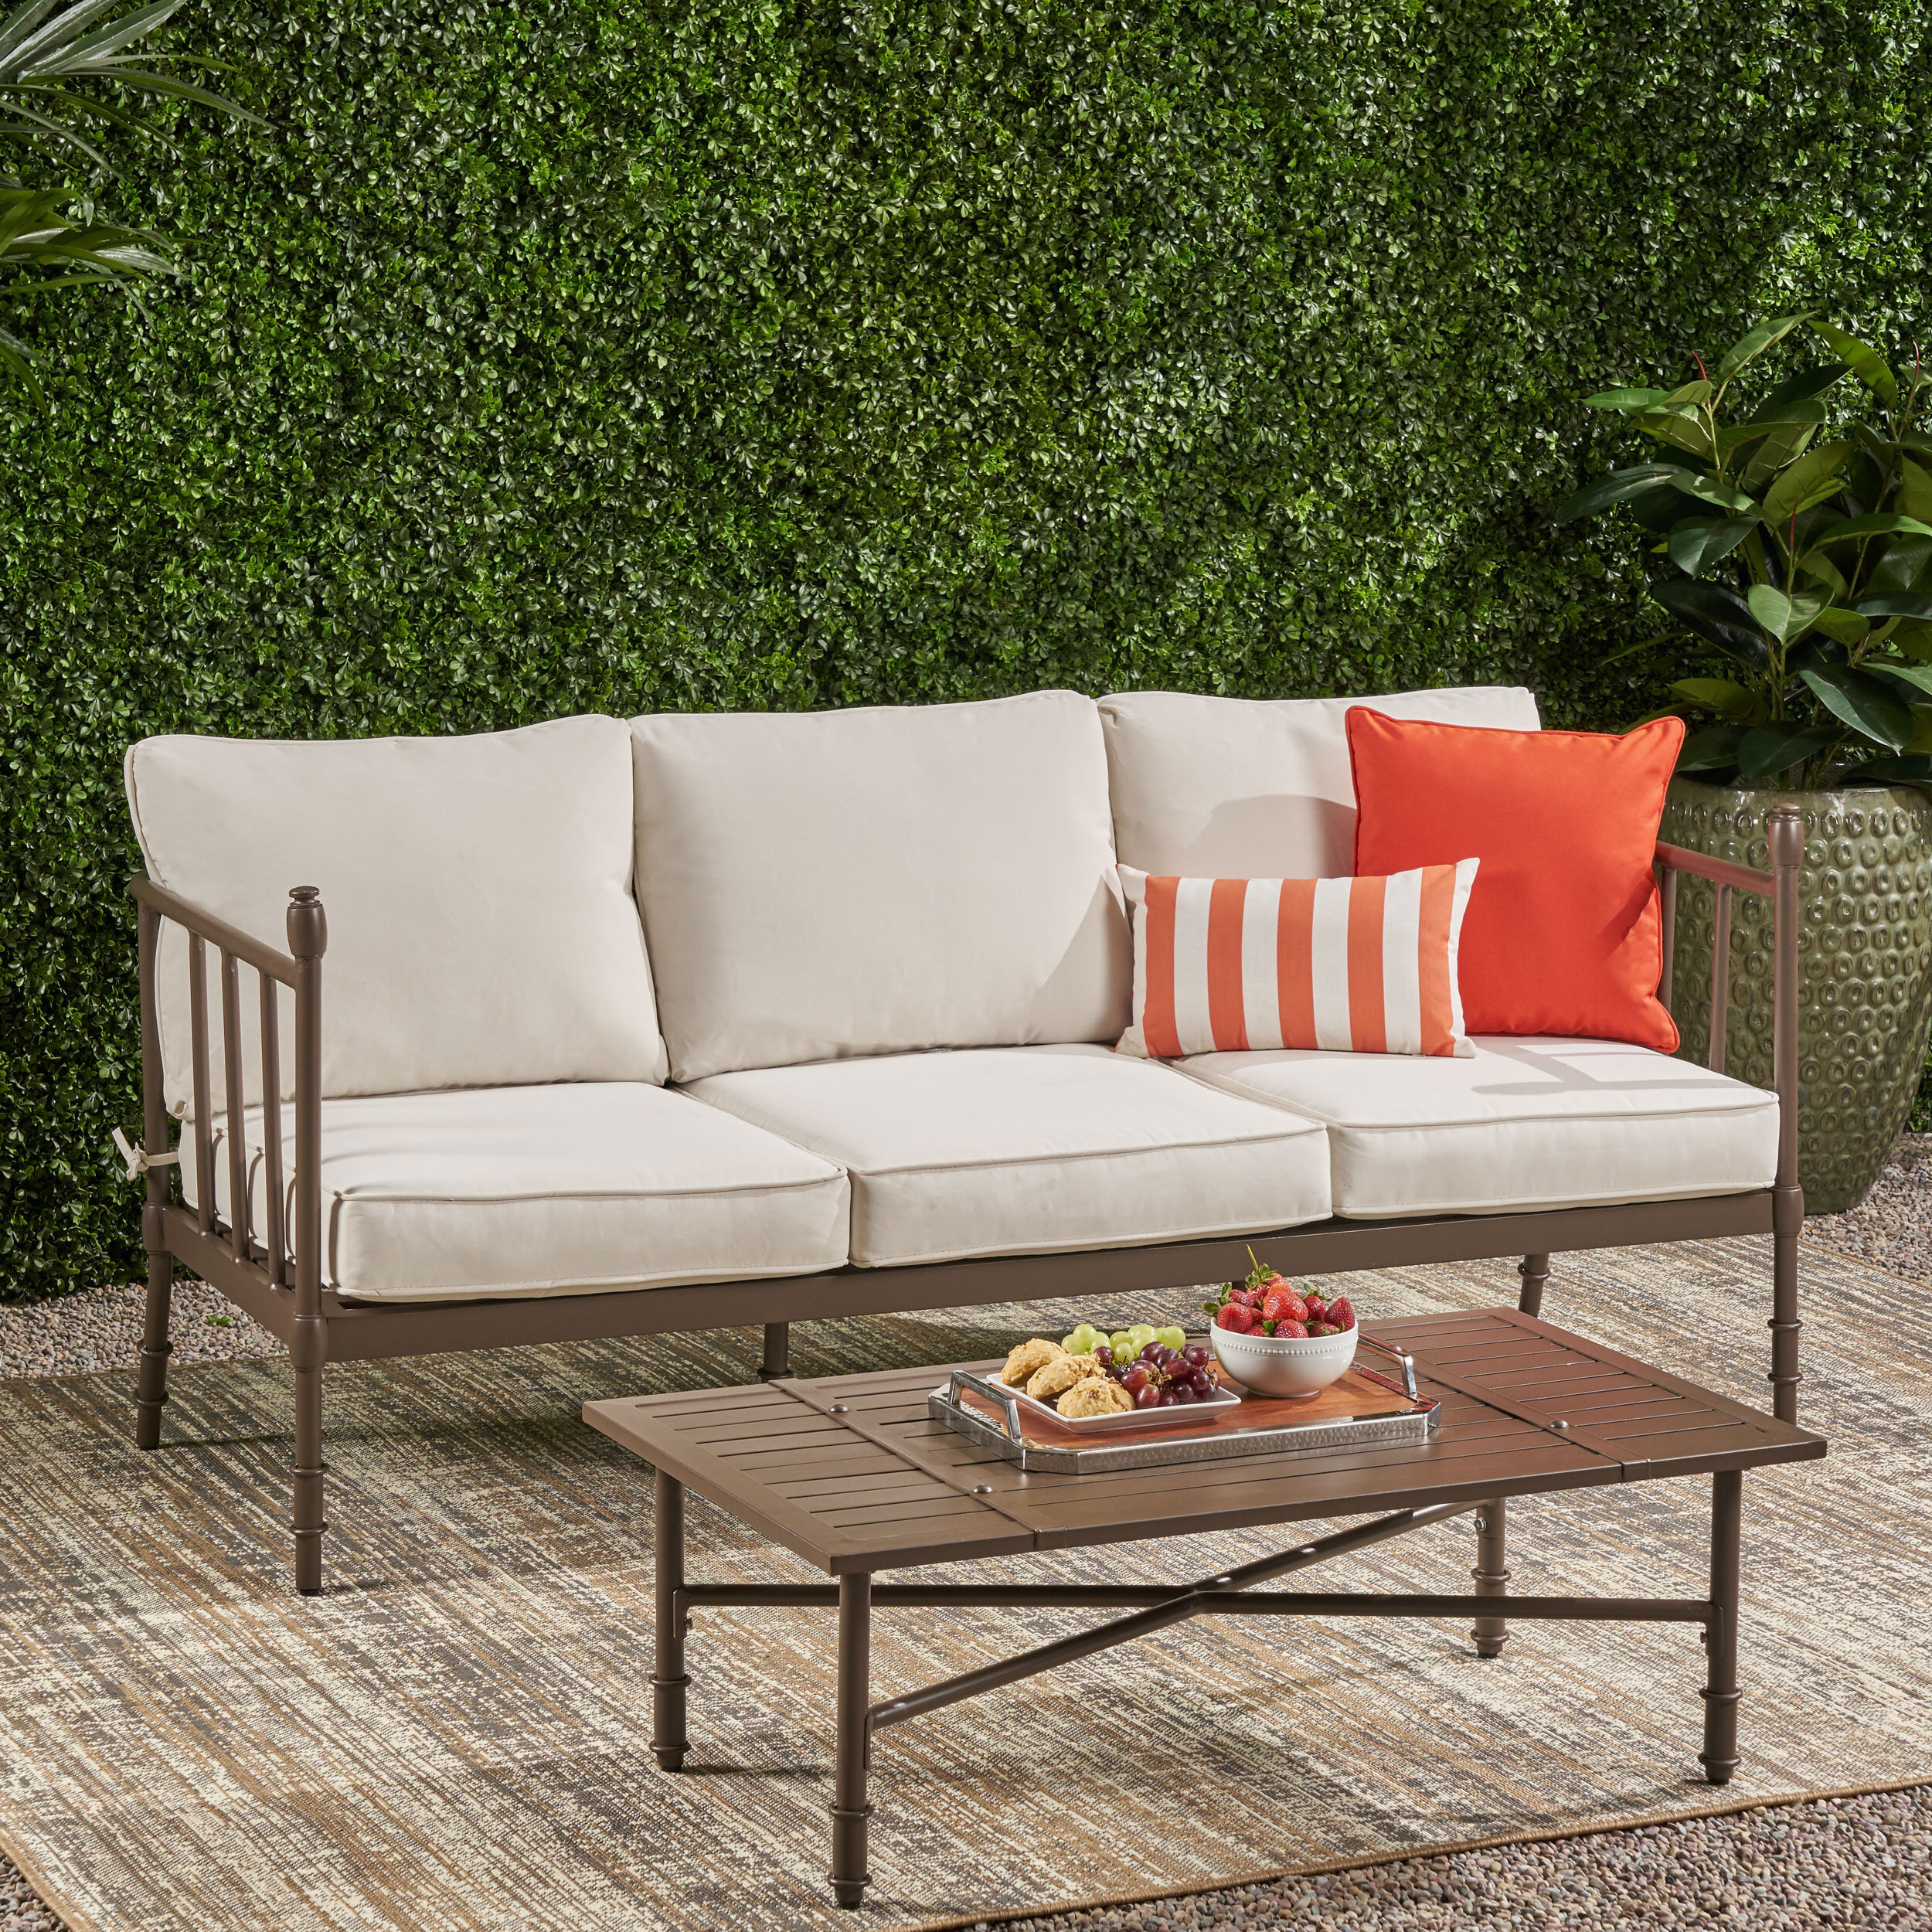 Astrid Wicker Patio Sofas With Cushions With Fashionable Joule Outdoor Aluminum Patio Sofa With Cushions (View 5 of 25)